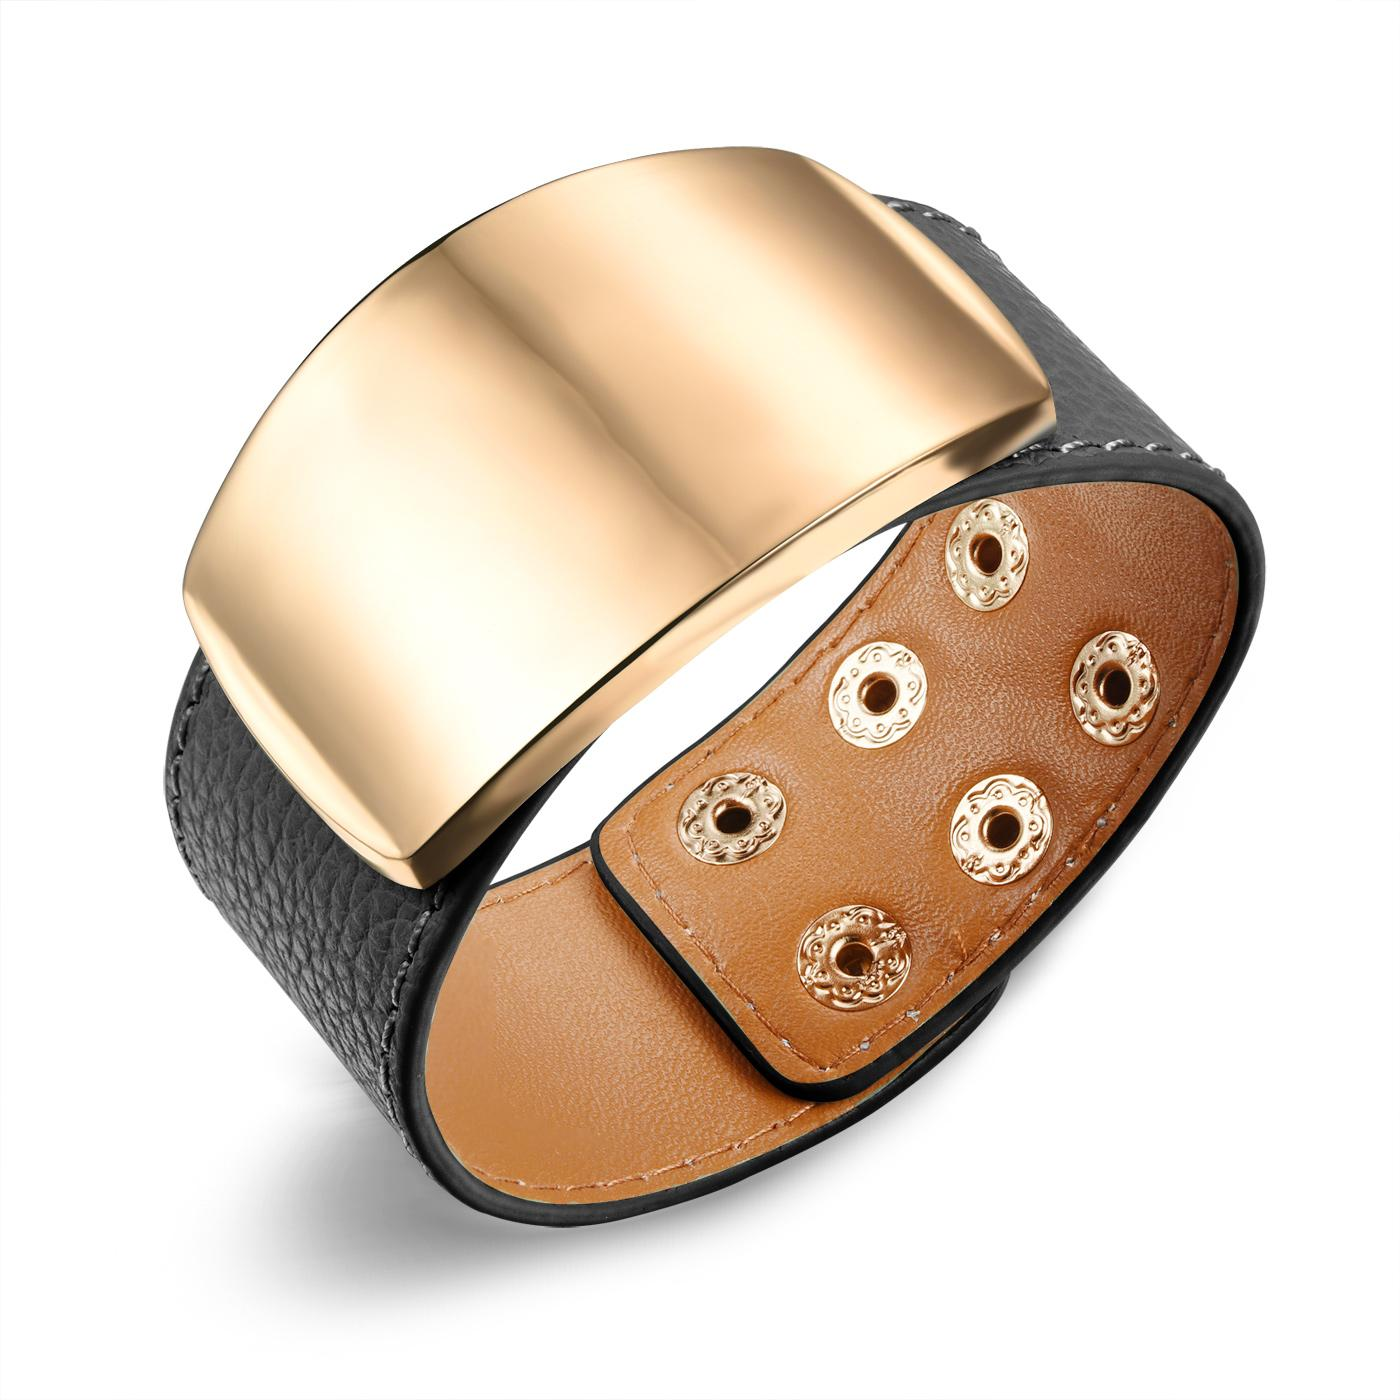 e08a2de42 3CM Wide Chunky Women Leather Cuff Bracelet Gold Alloy Belt Bangle With  Snap Button Childrens Charm Bracelet Leather Charm Bracelet From Jdh2015,  ...